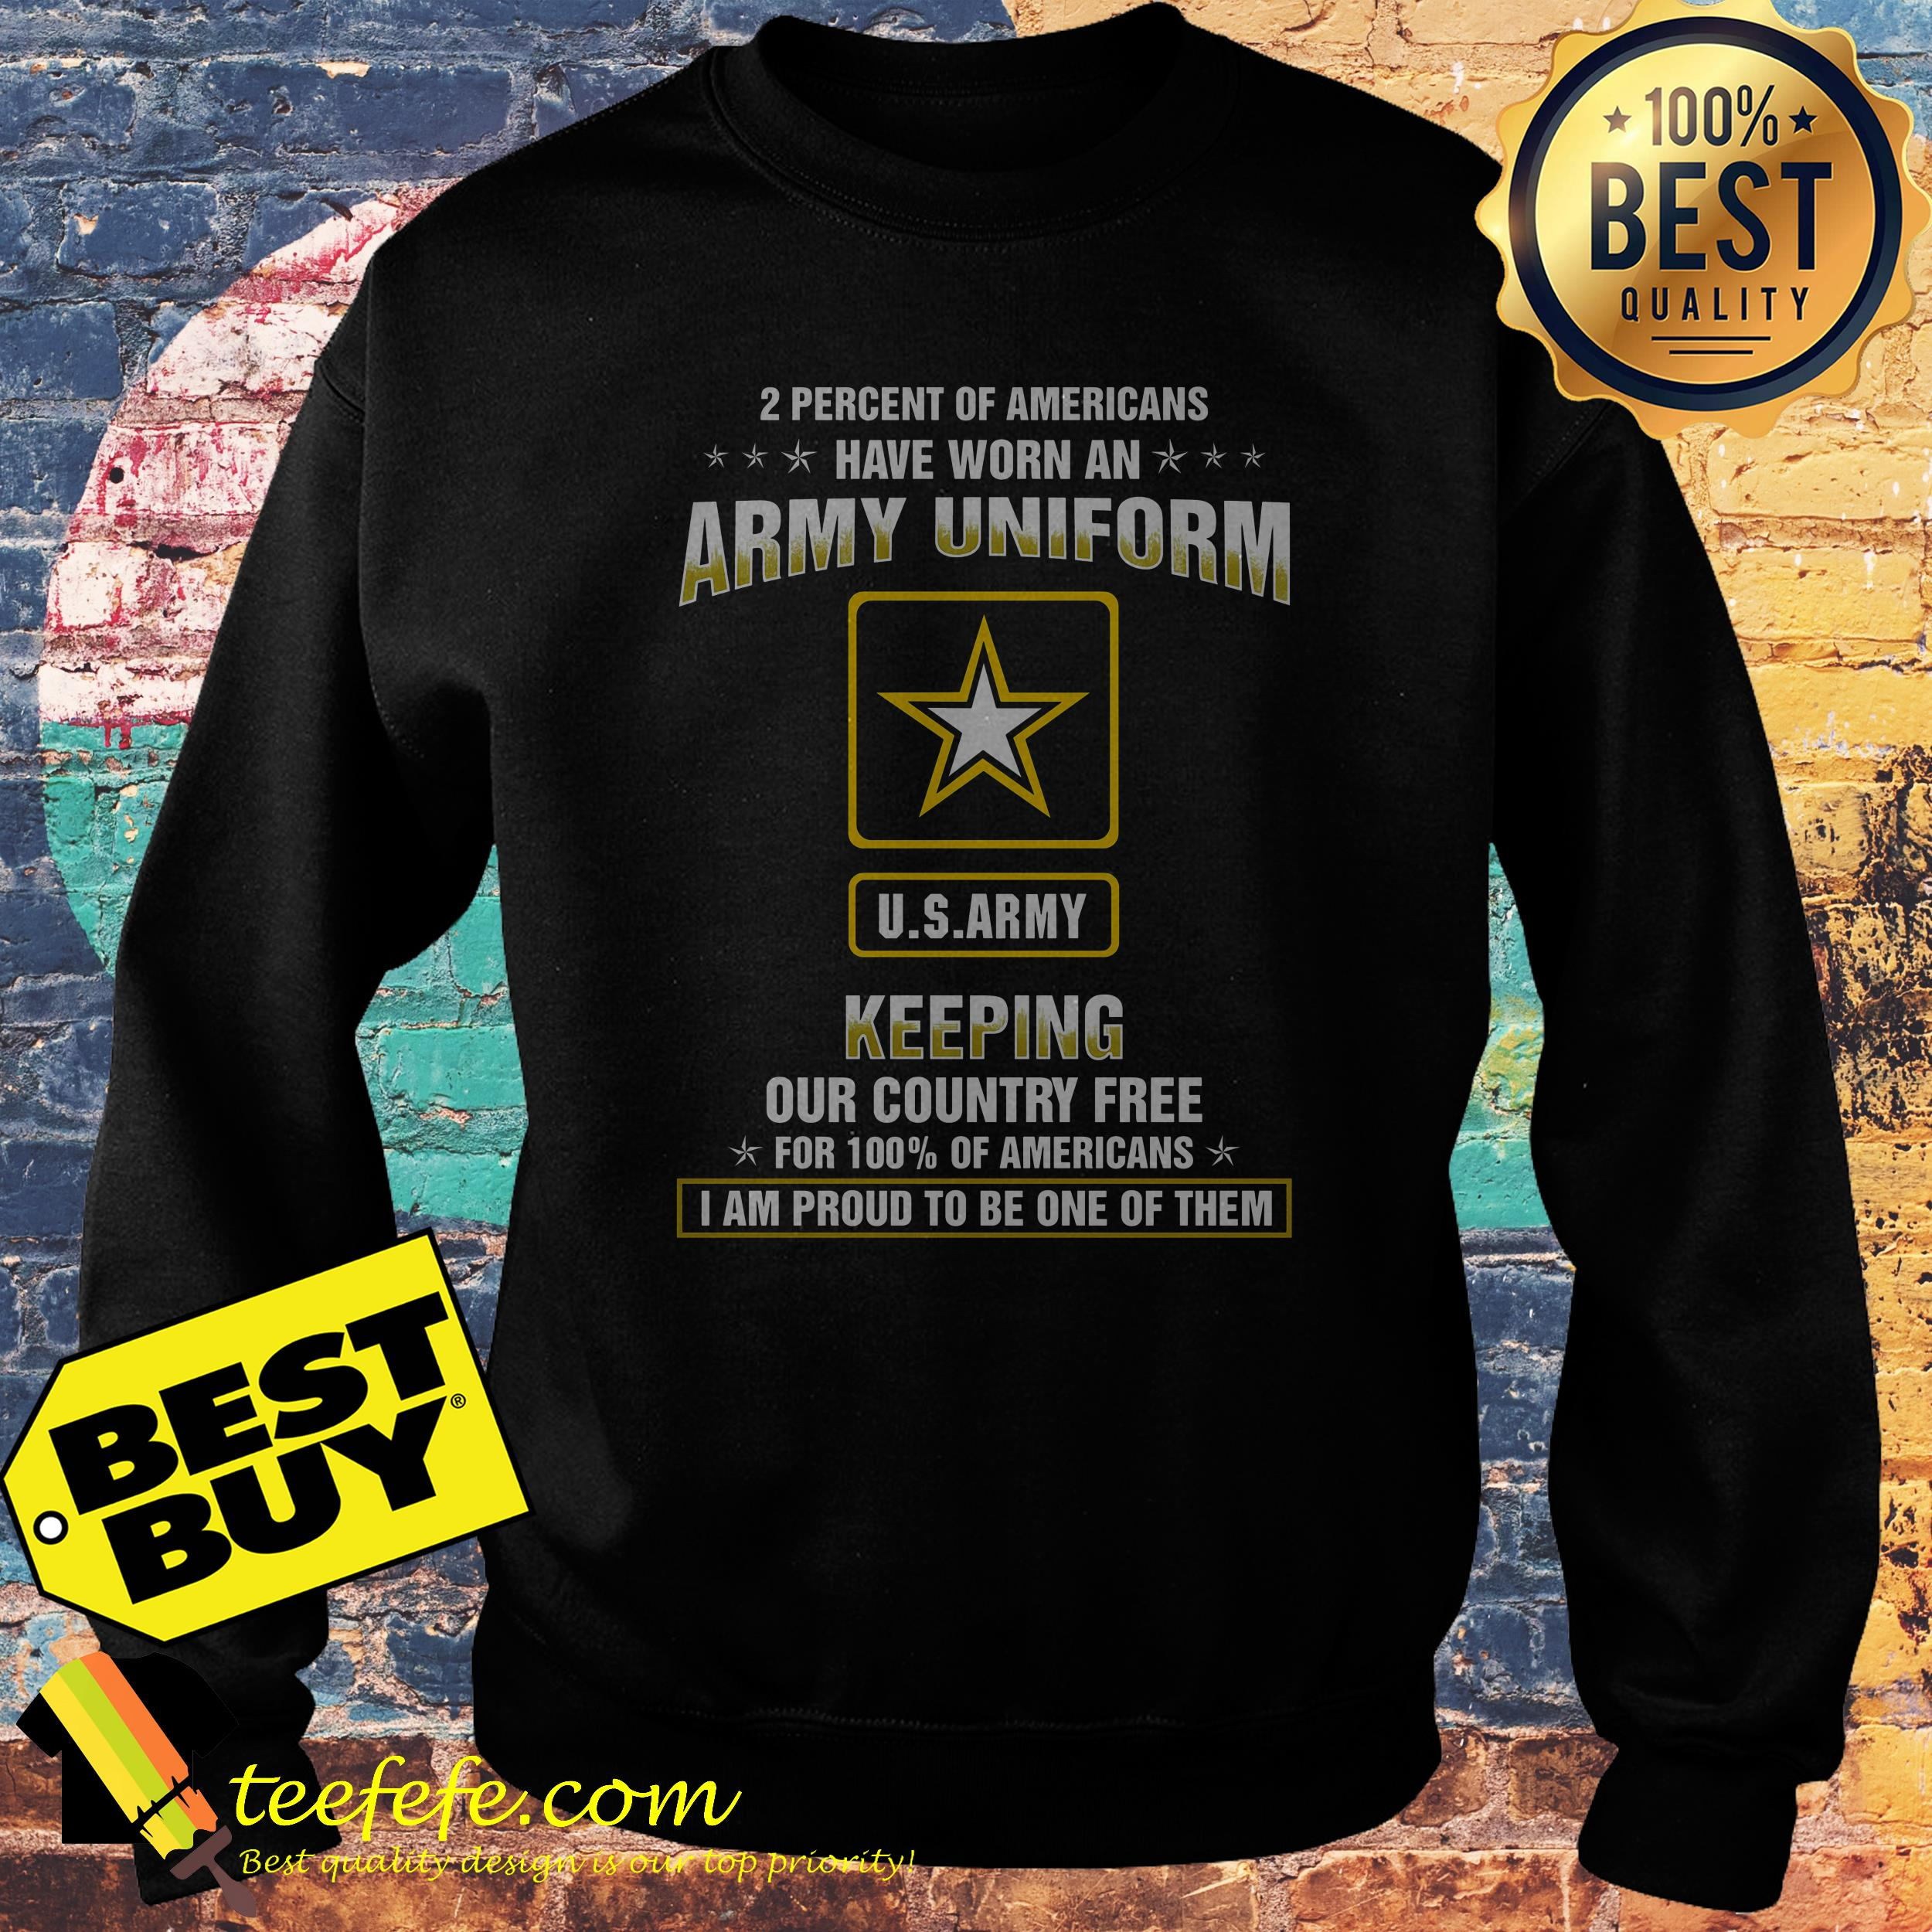 2 percent of Americans have worn an army uniform US army keeping our country free sweatshirt